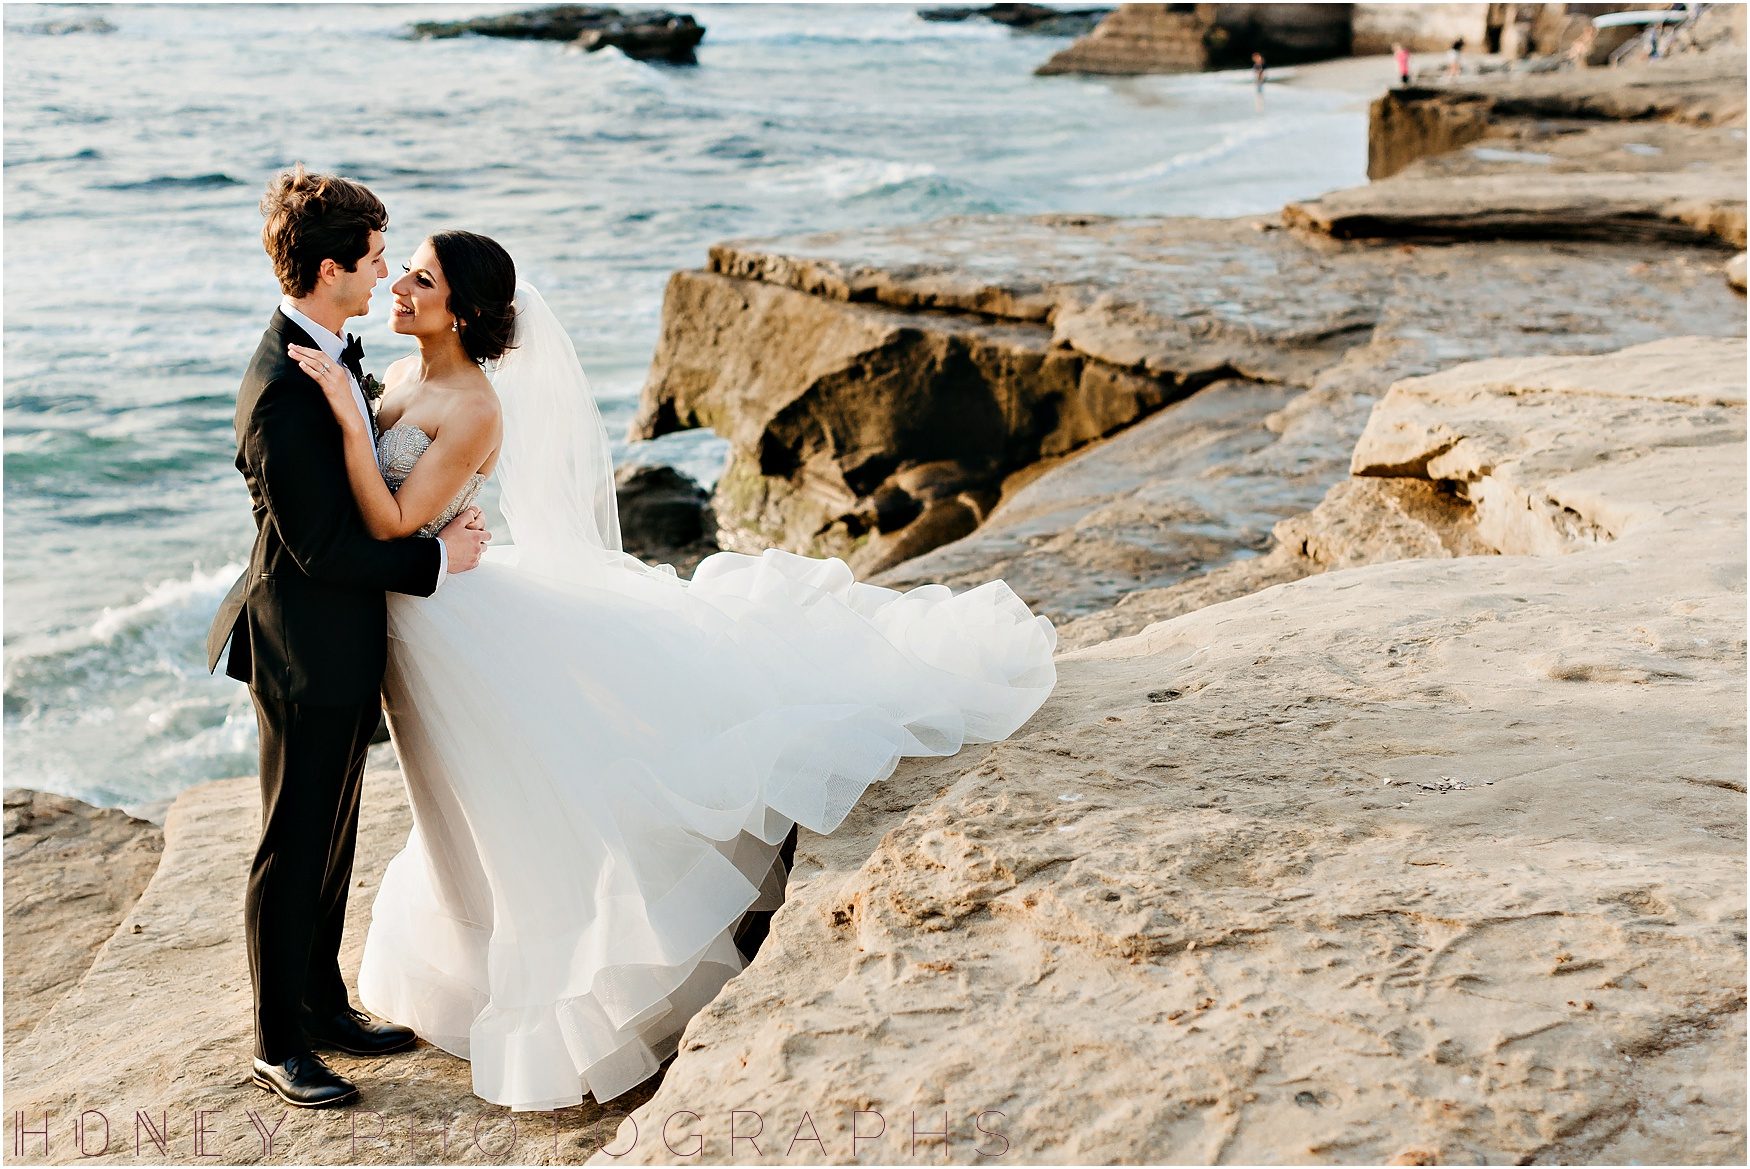 la_jolla_timeless_classic_elegant_cliffs_beach_black_tie_wedding042.jpg